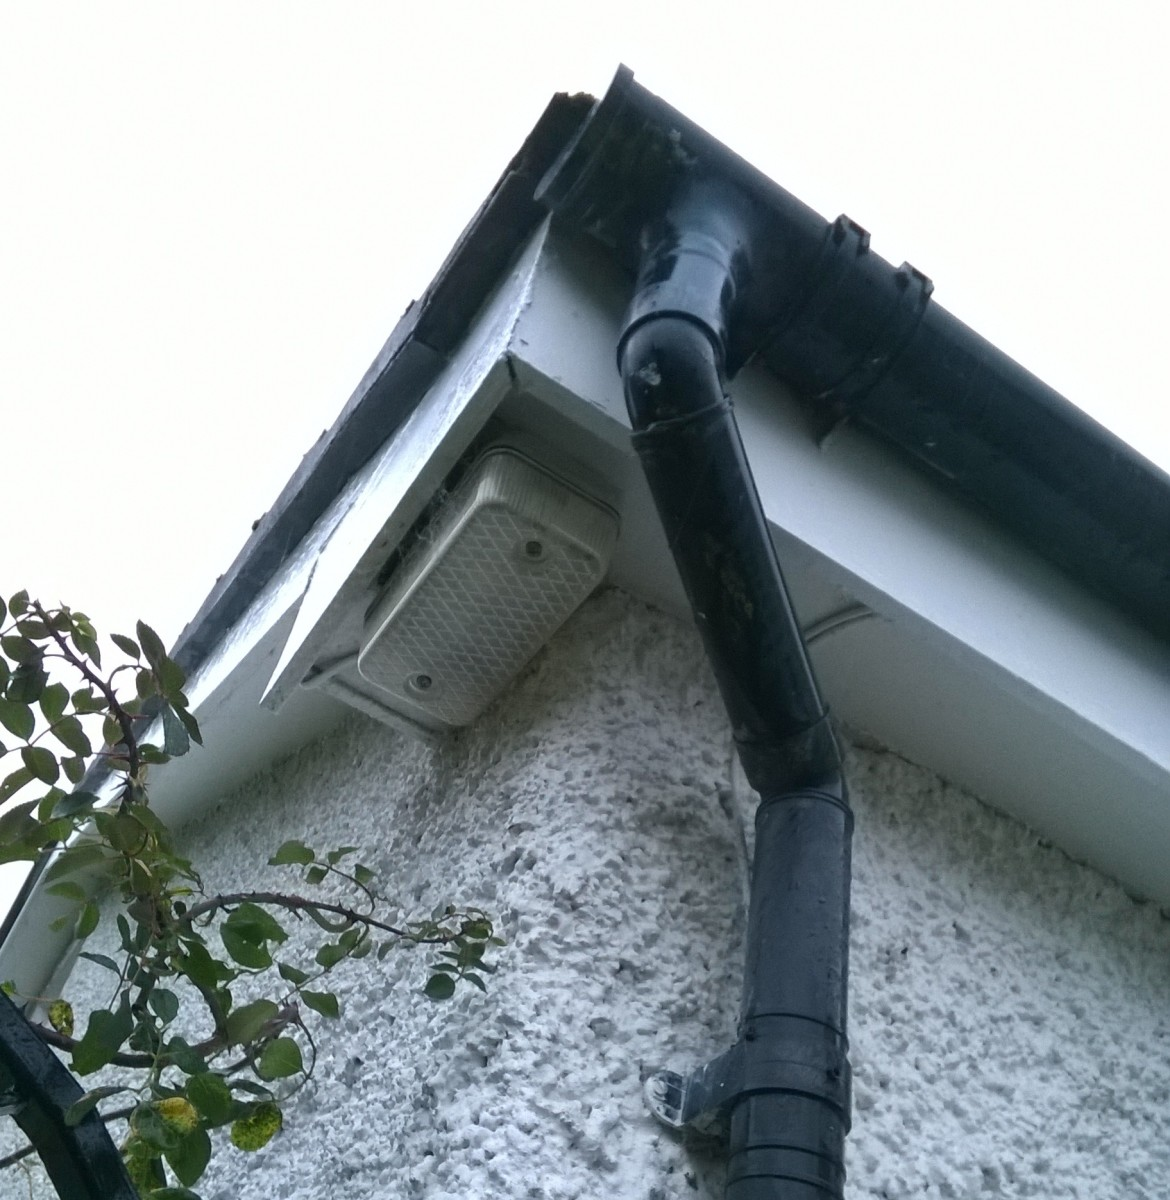 Downpipes and gutters